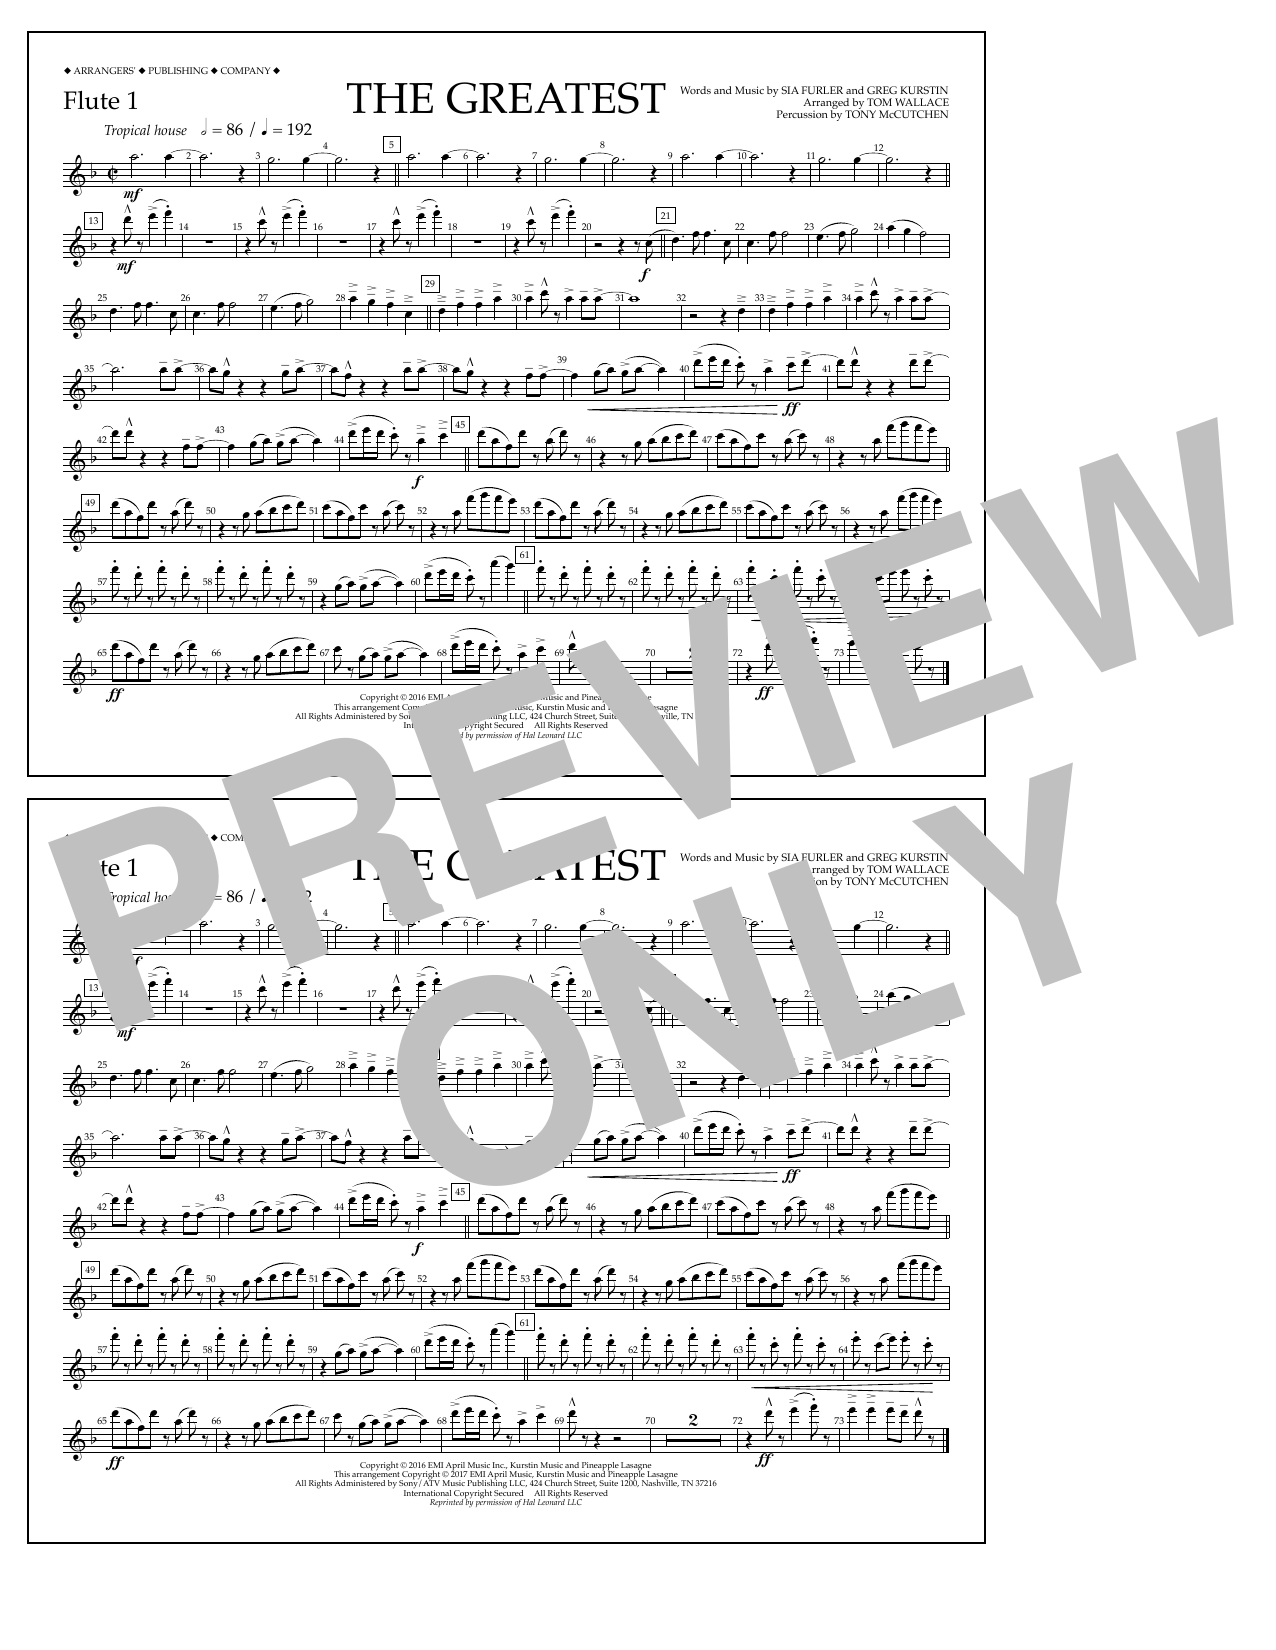 The Greatest - Flute 1 Sheet Music